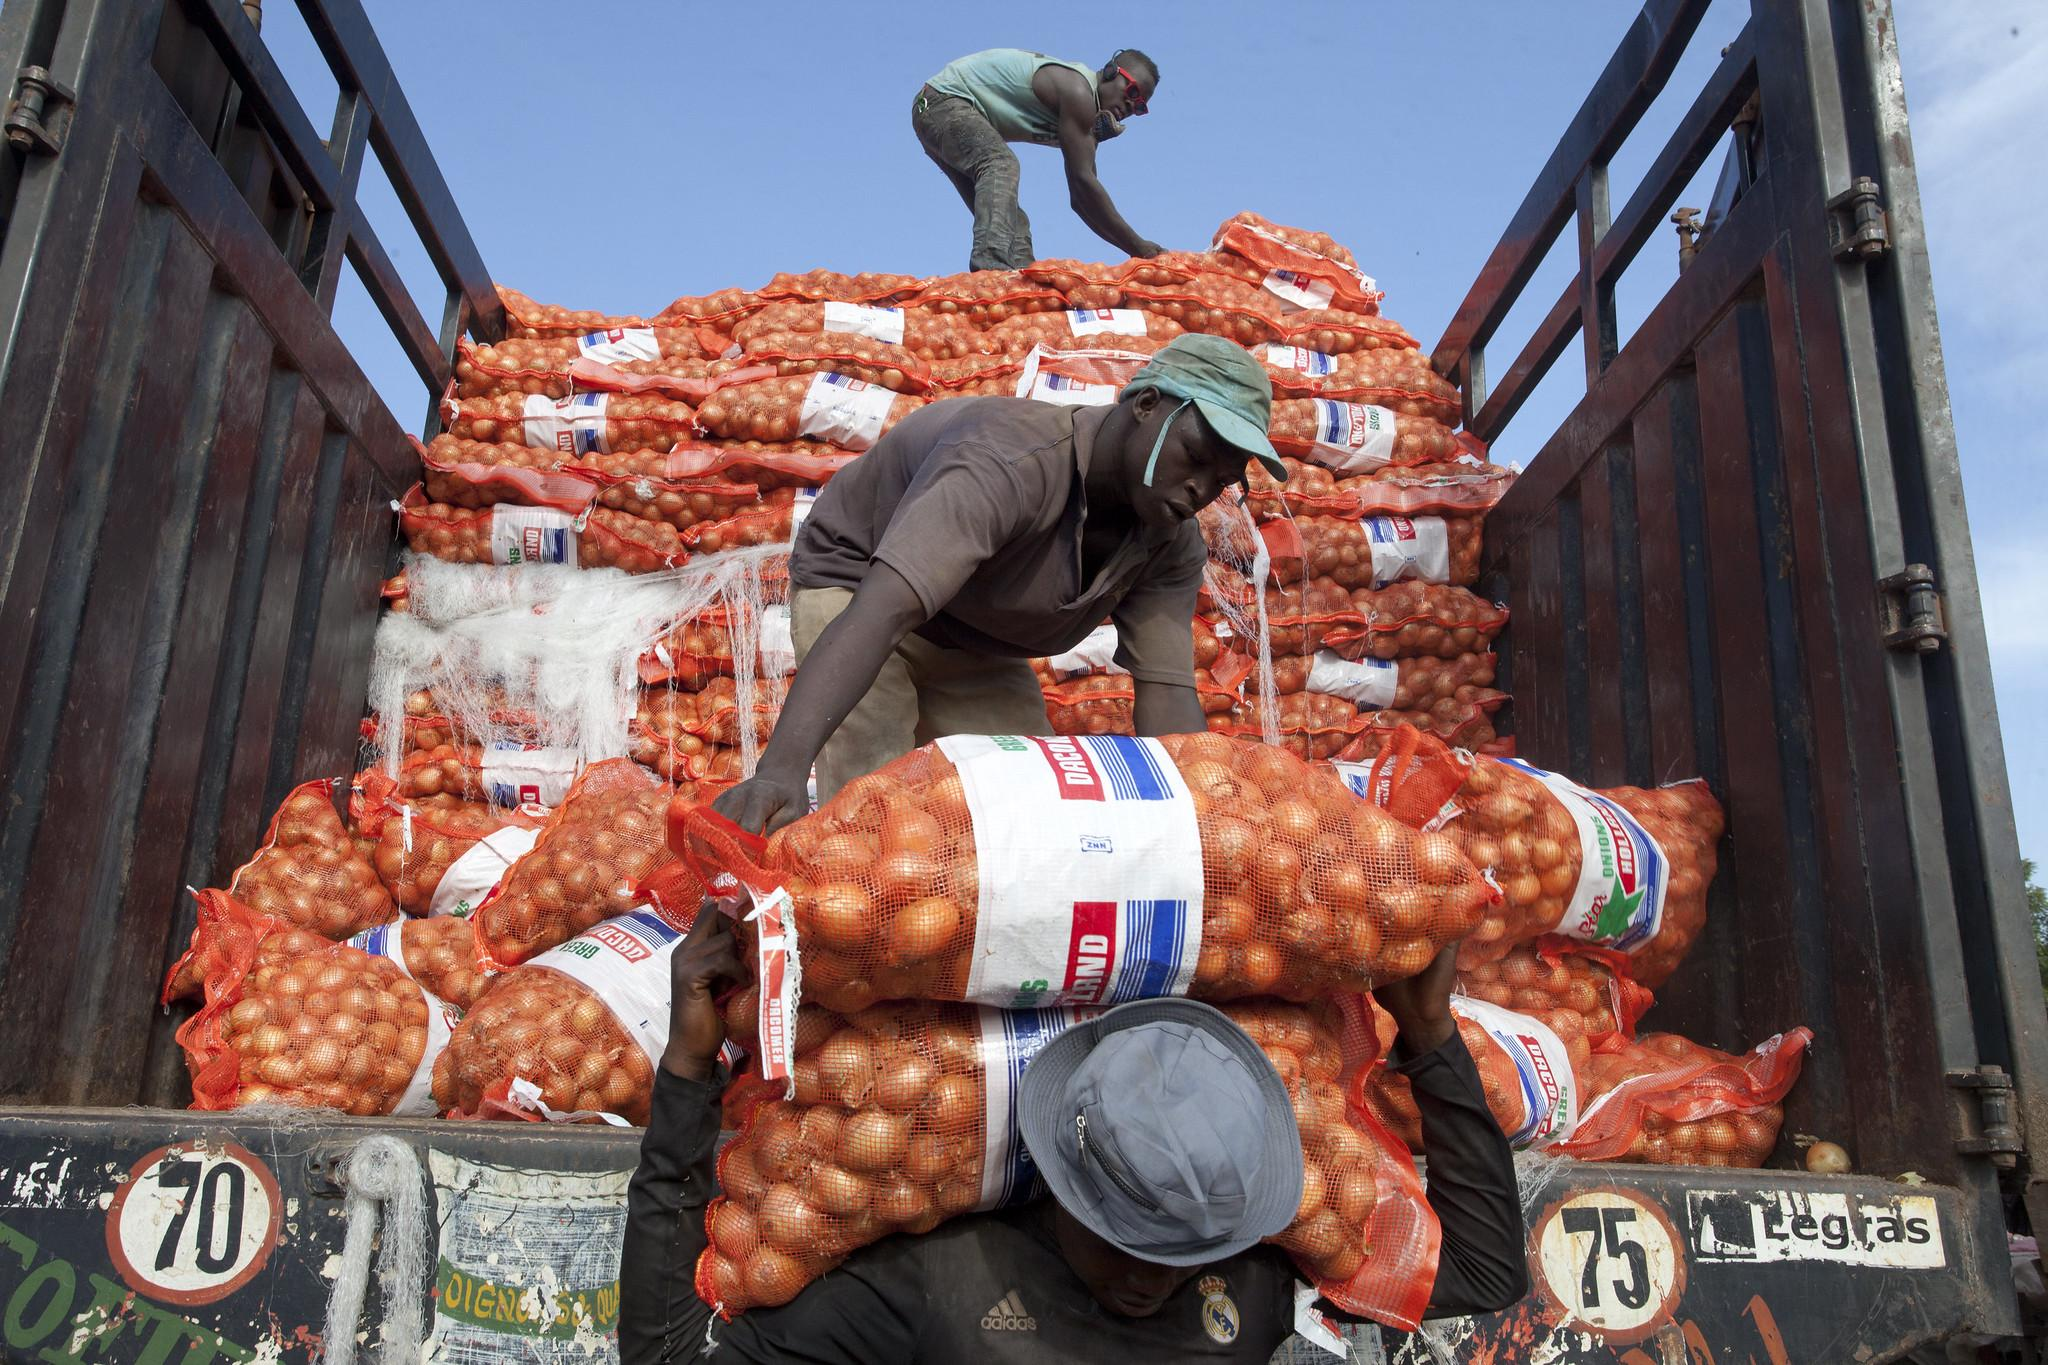 Unload sacks of onions in a farmers market in Bamako